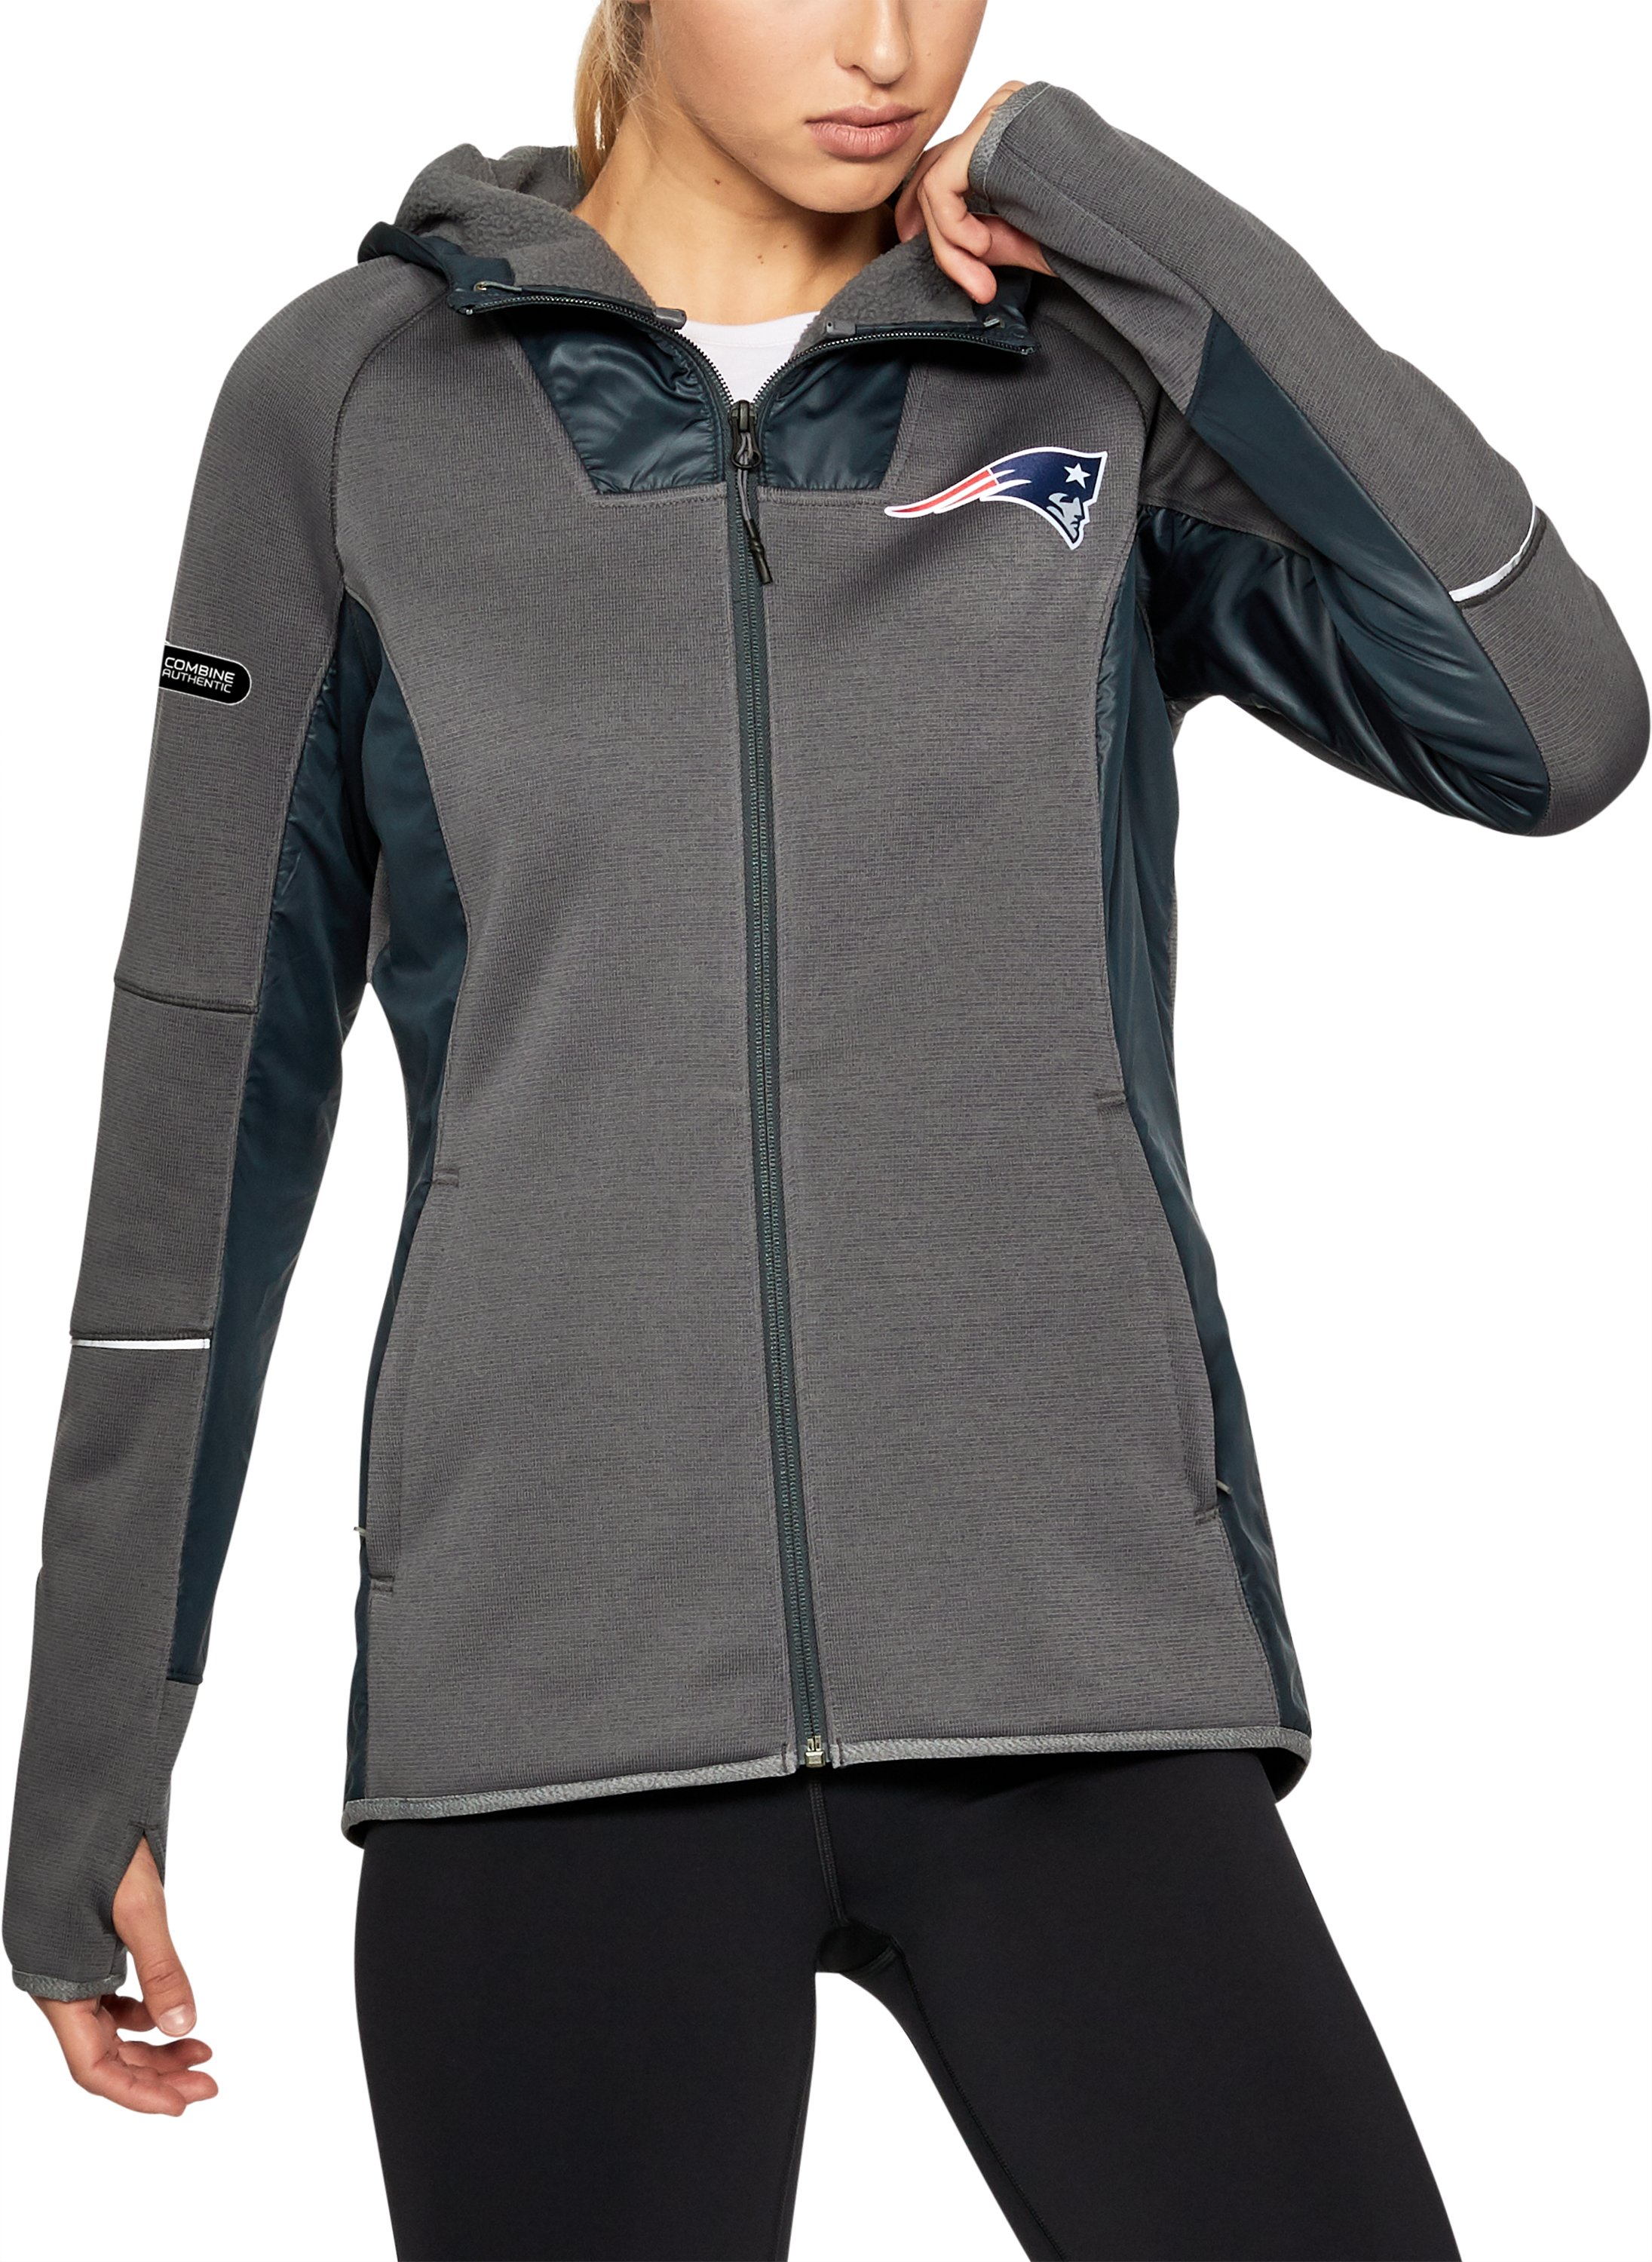 Women's NFL Combine Authentic Swacket, NFL_NEW ENGLAND PATRIOTS_STEALTH GRAY